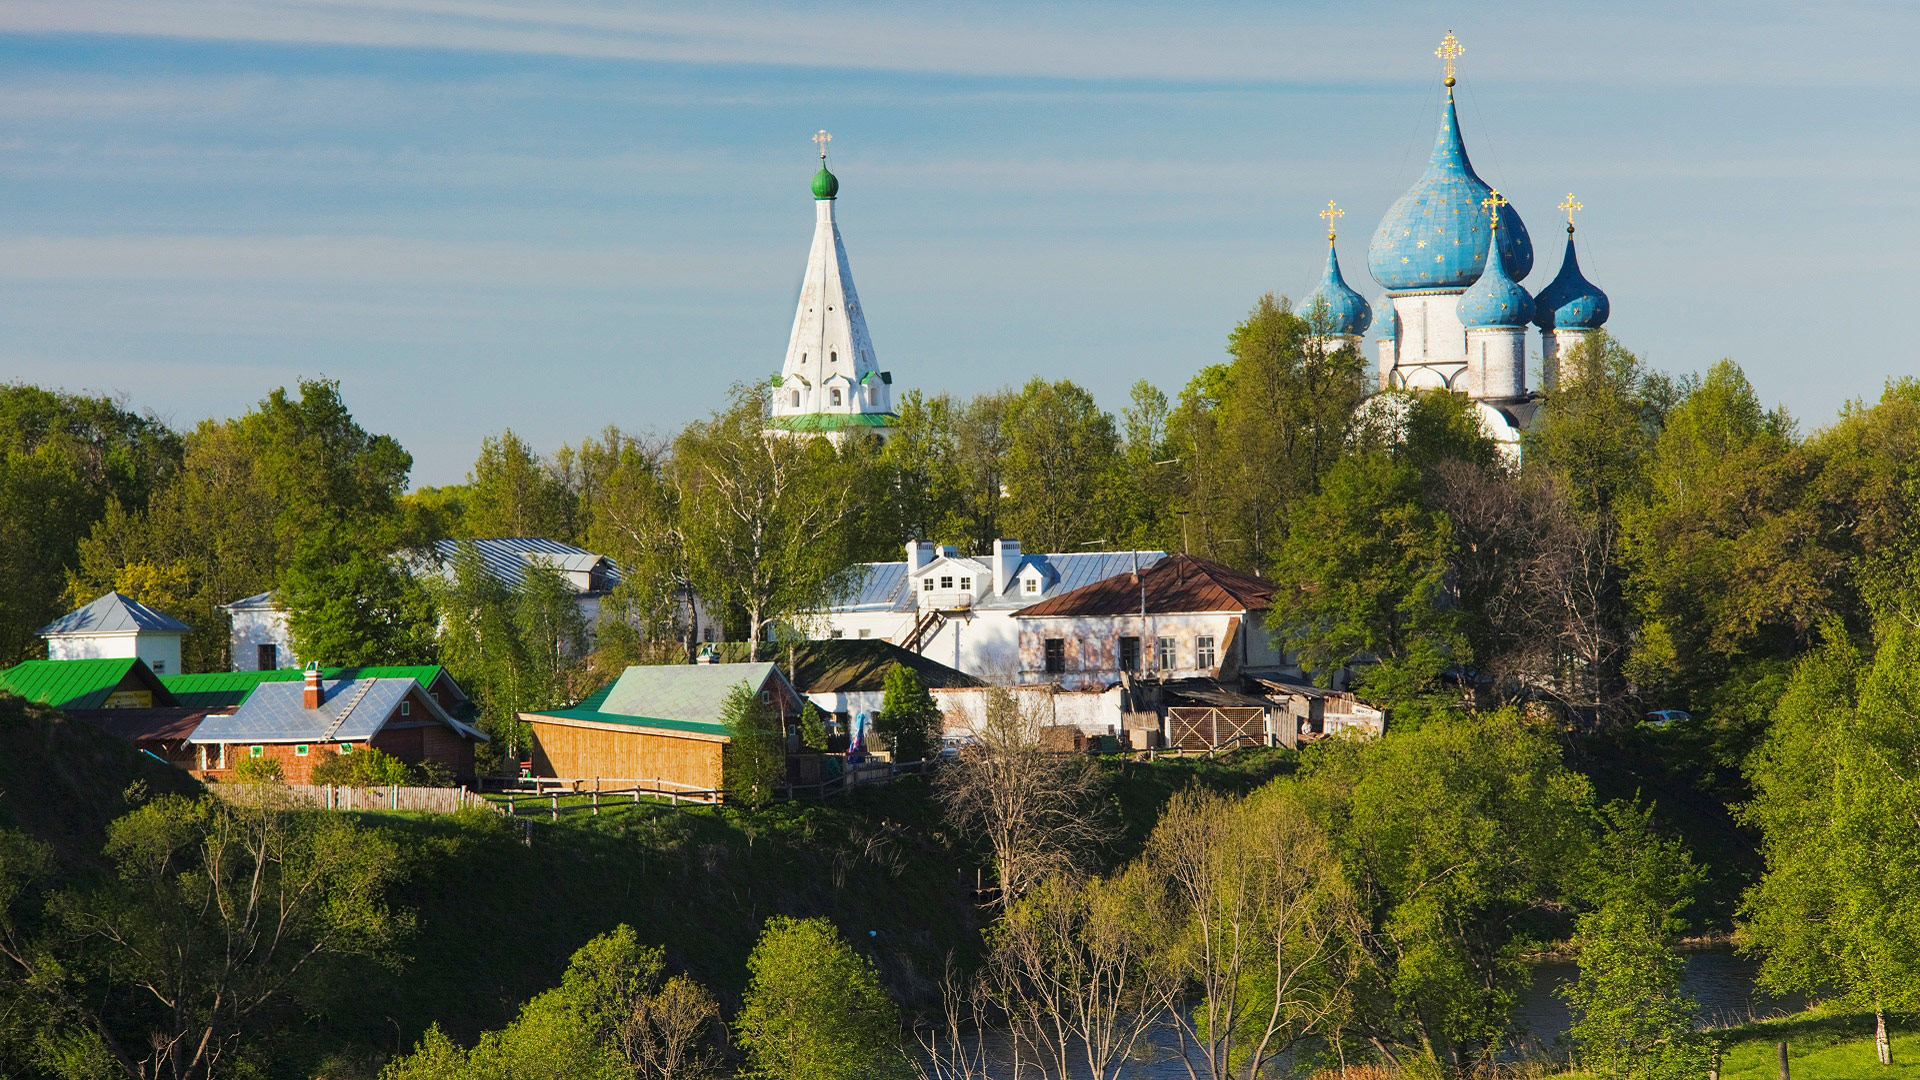 Elevated view of the town of Suzdal, Golden Ring, Vladimir Oblast, Russia with GeoEx